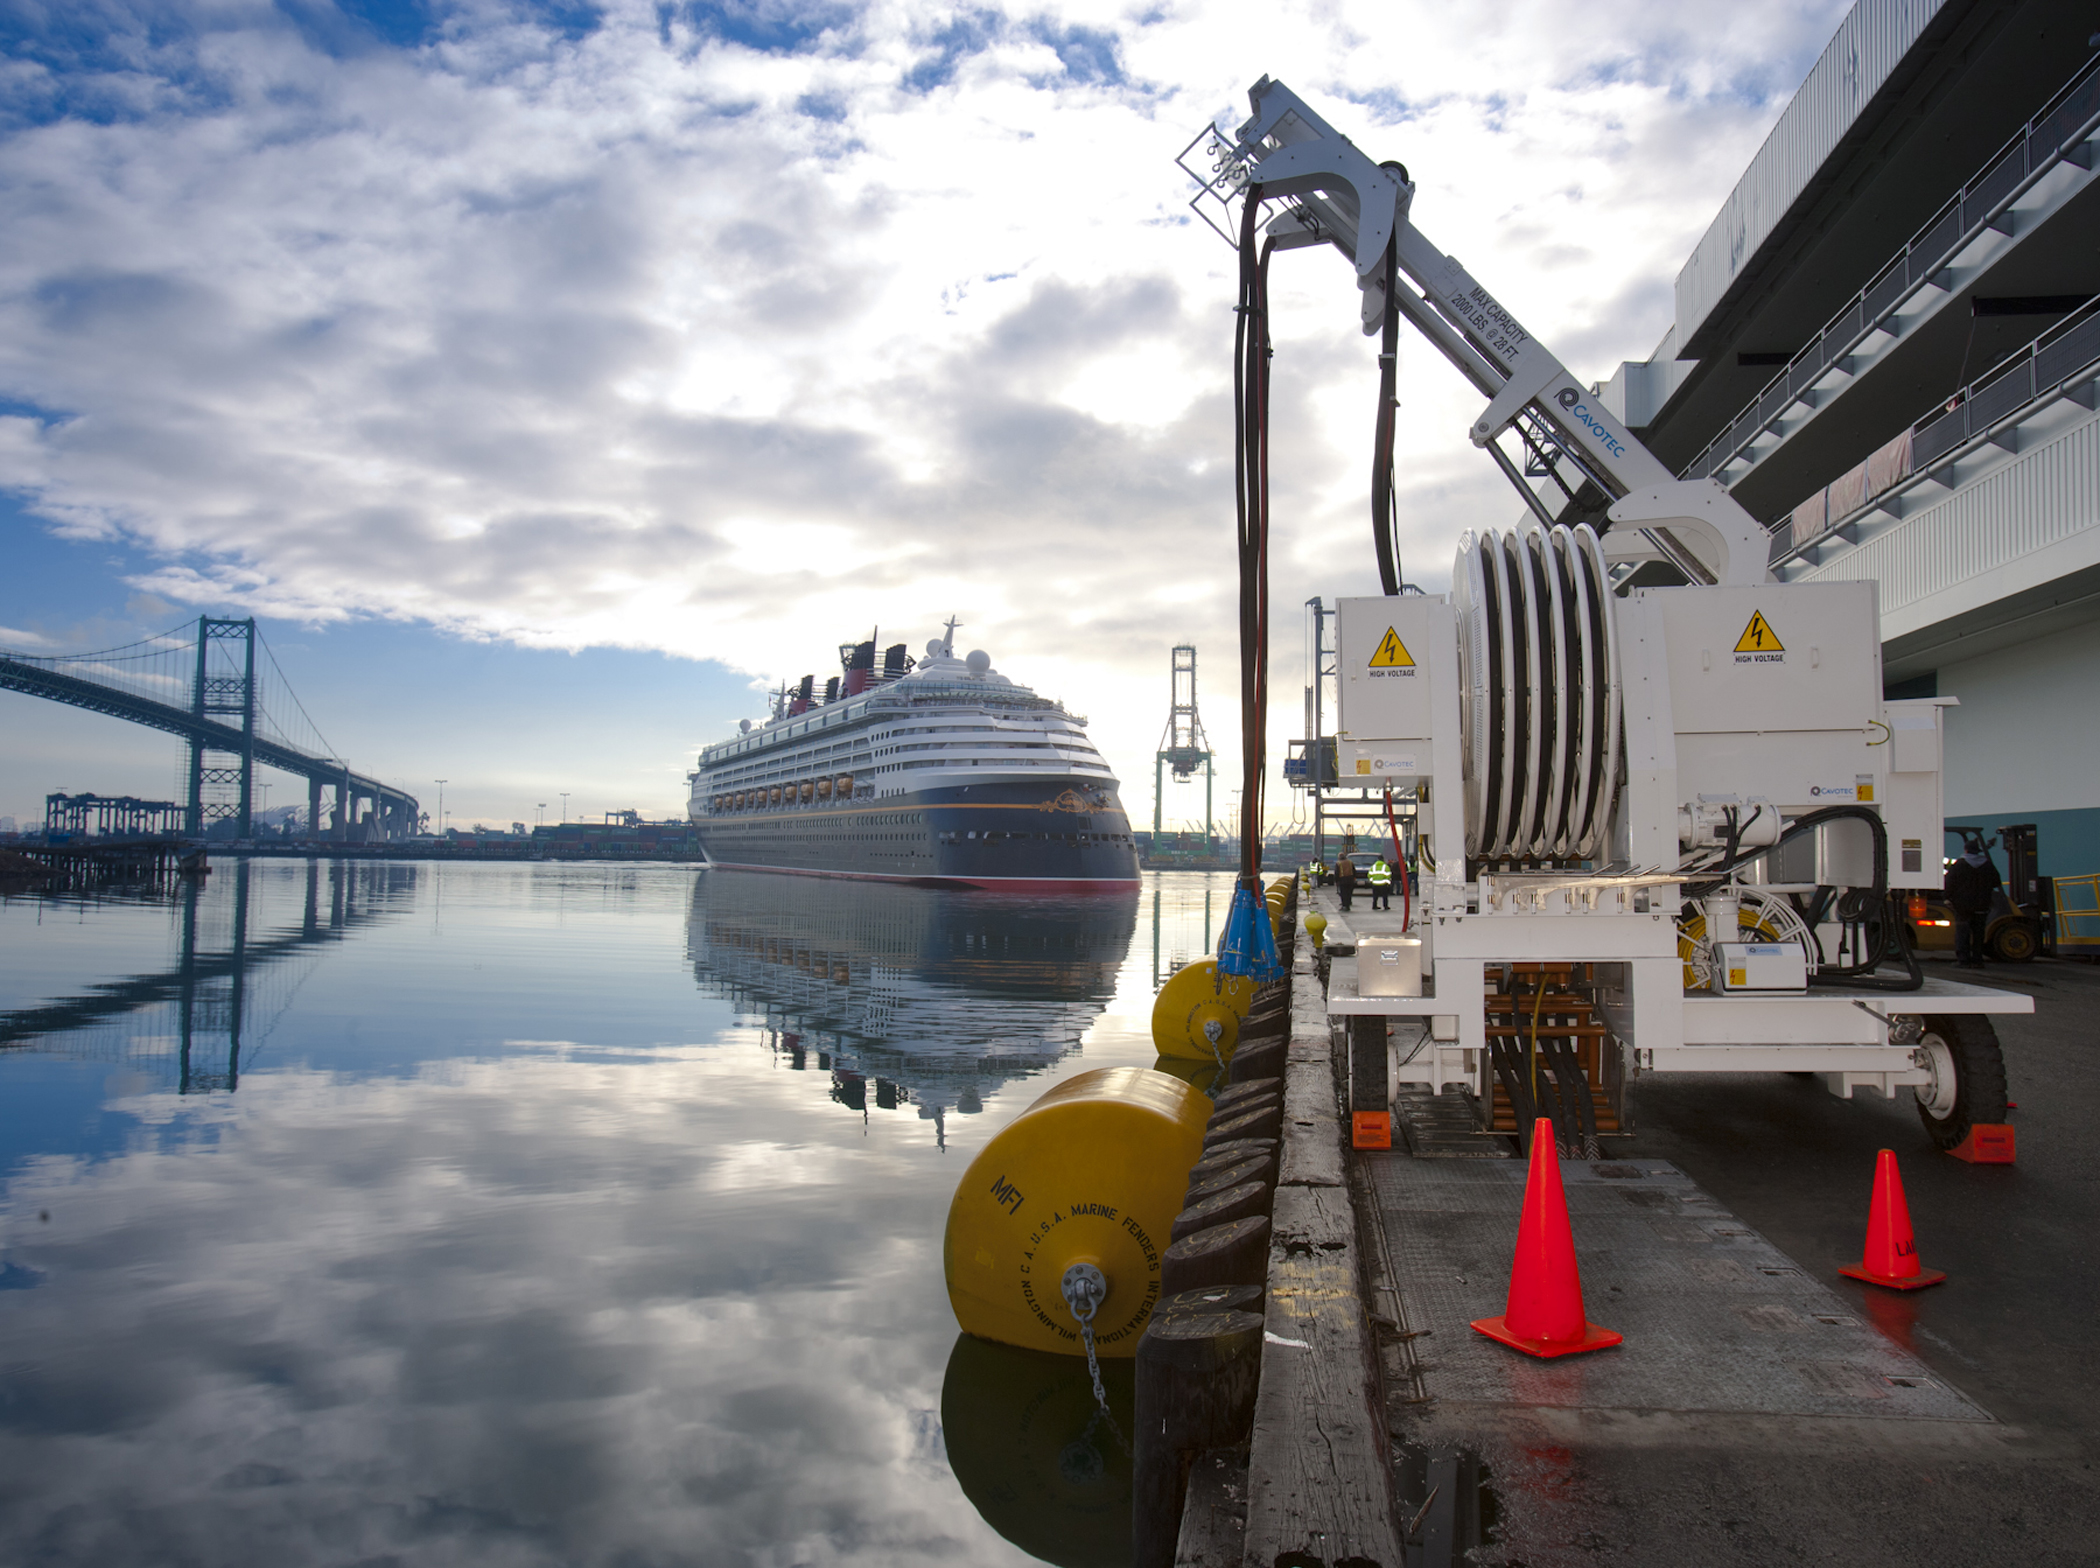 Port Of Los Angeles A Cleaner Port A Brighter Future - San pedro harbor cruise ship schedule